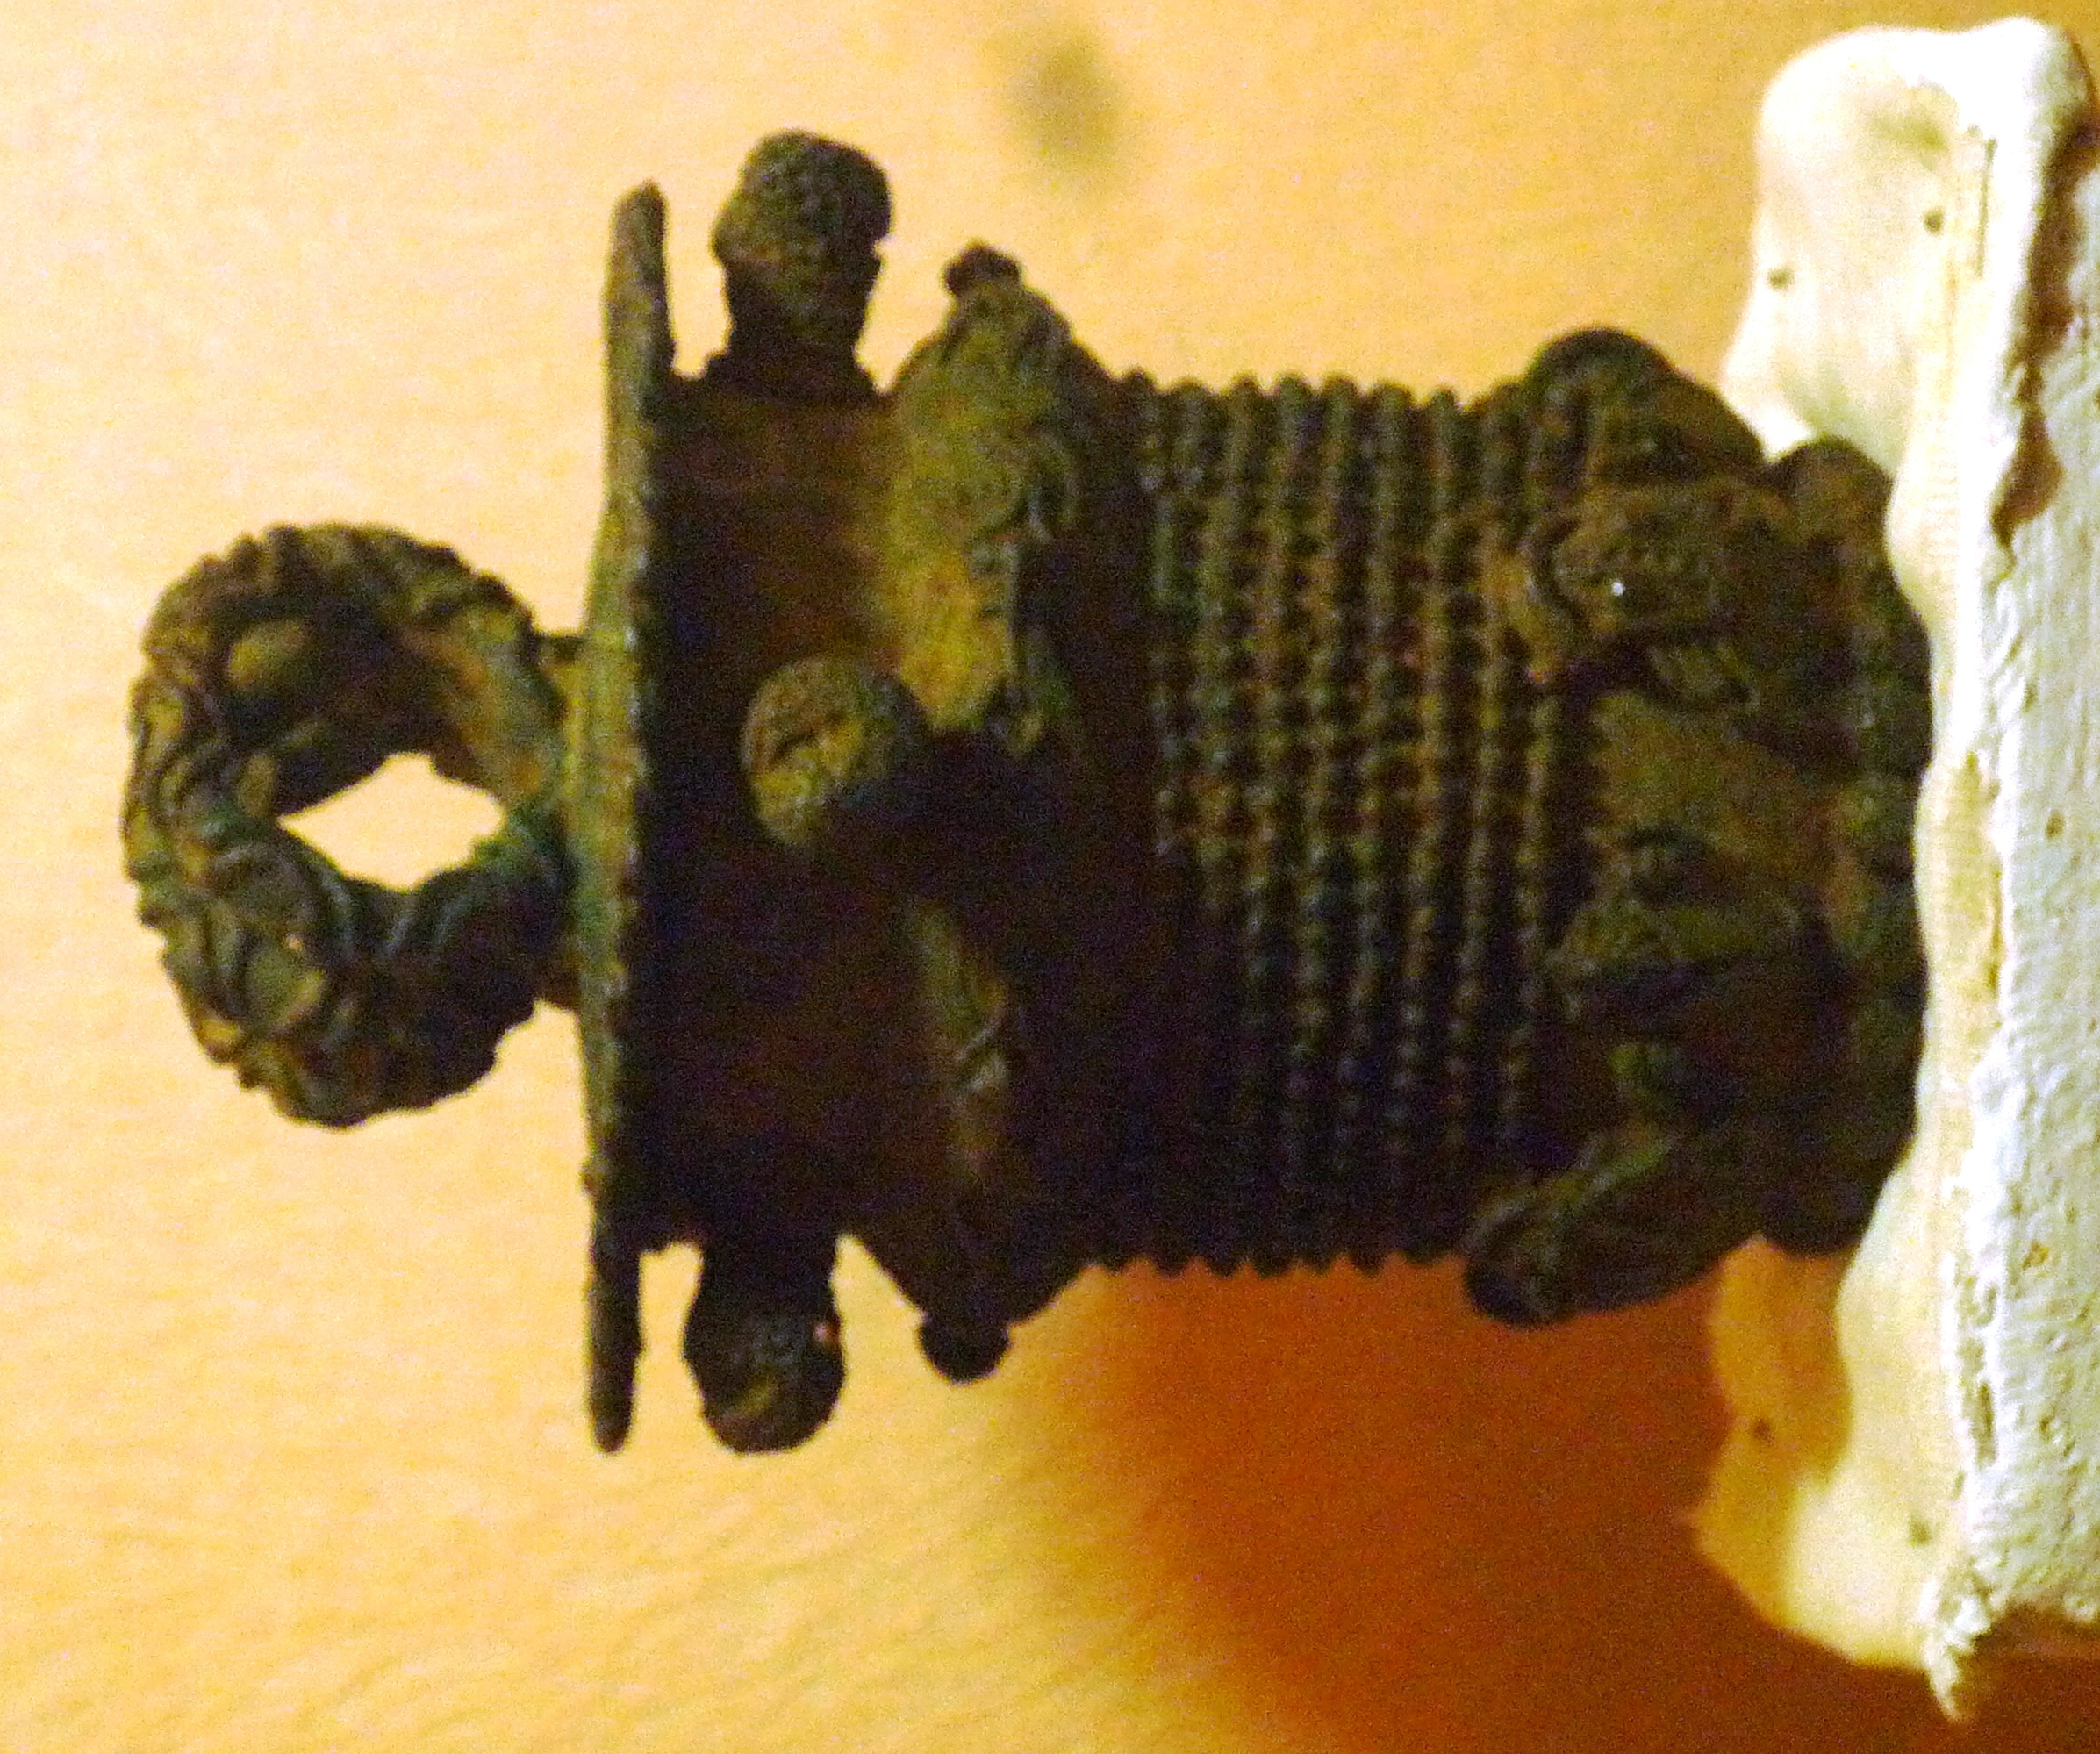 File:9th century bronze ceremonial pot, Igbo-Ukwu, Nigeria JPG